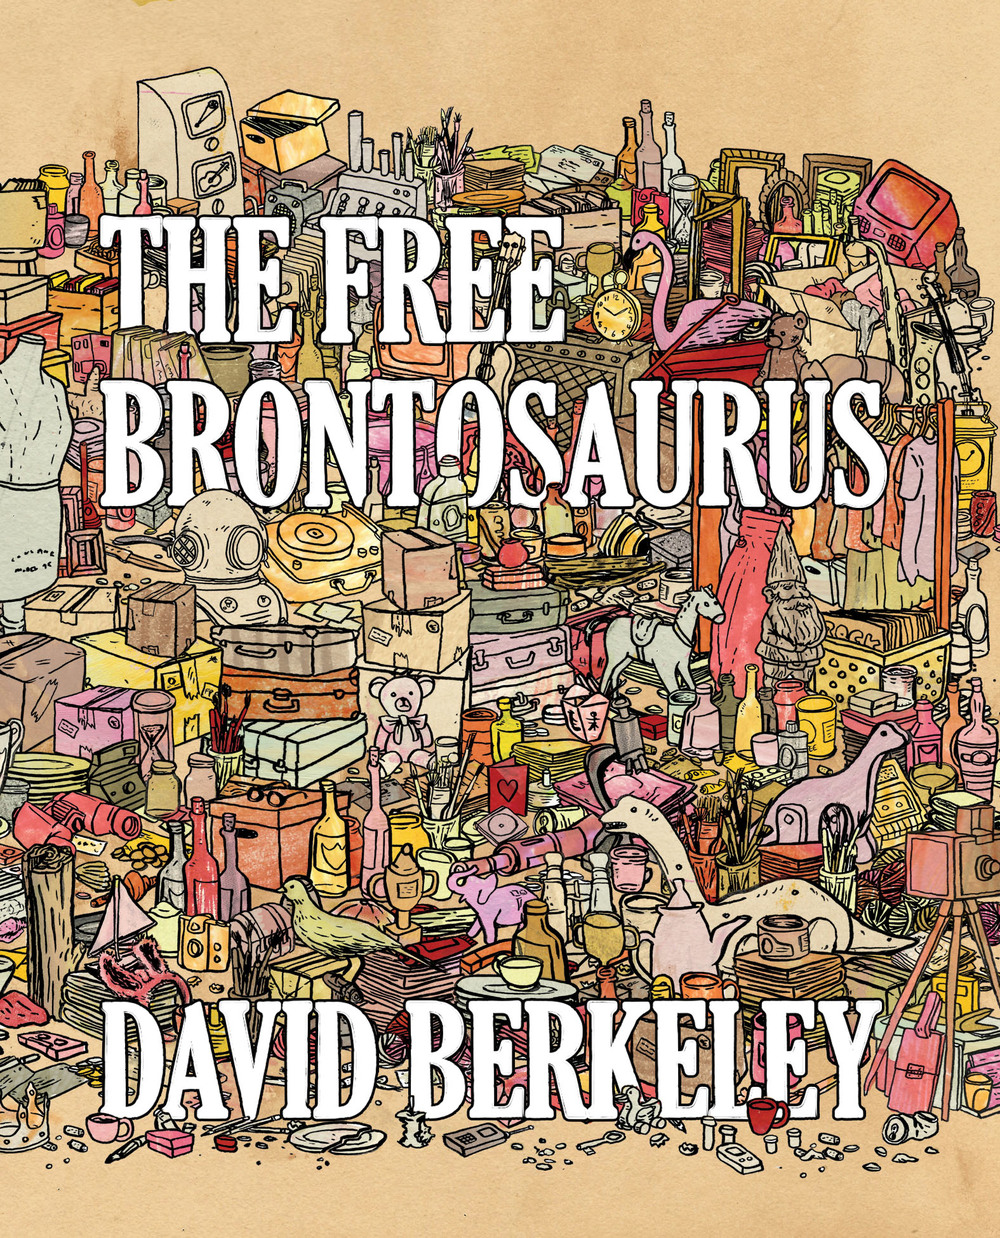 The Free Brontosaurus is a novella comprising ten interweaving stories, complete with an accompanying album of ten songs. All set in the same fictional city, at the same moment in time, minor characters in one story are major characters in another. It is a bit like Olive Kitteridge, if reimagined by Miranda July. These are gently written narratives of isolation, describing characters disconnected from home and community. The book is full of dark humor, sadness and glimmers of joy. Ultimately, the characters' abilities to find beauty in the bizarre connect and redeem them, offering the characters (and us) hope.